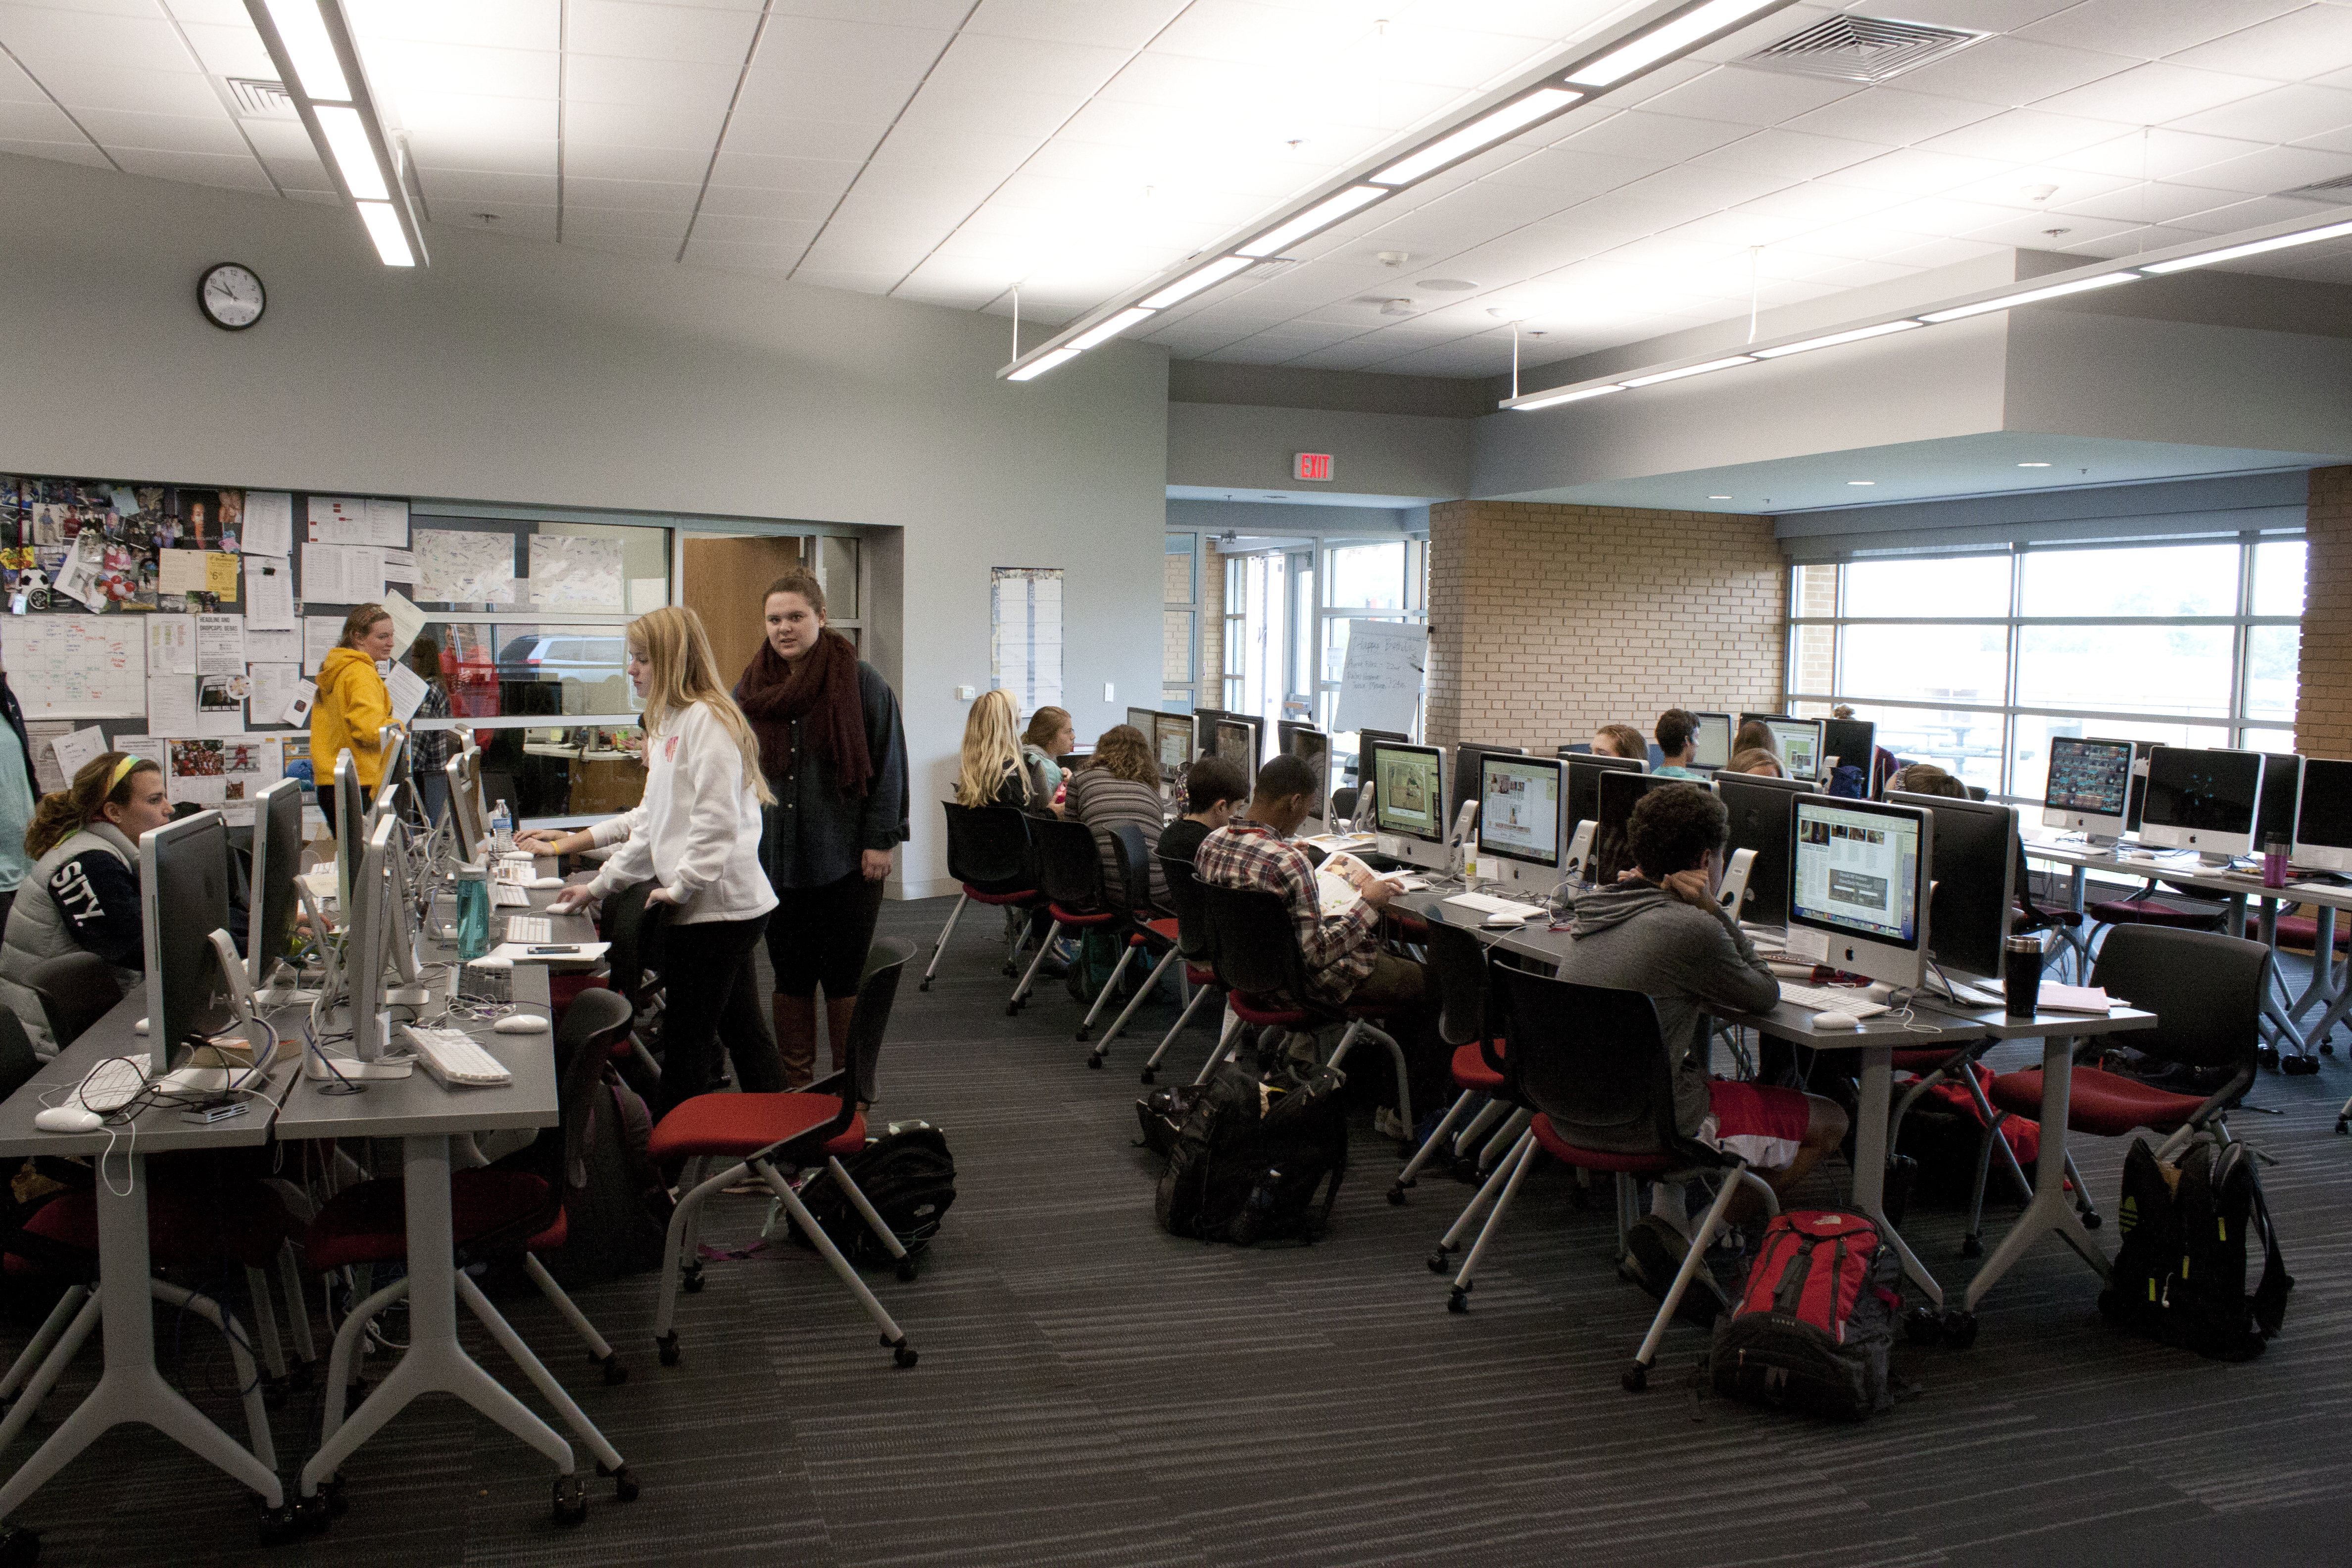 Students who write news stories at Kirkwood High School have freedom. Writing without needing administrator approval on stories teaches the full scope of the First Amendment, the principal says.